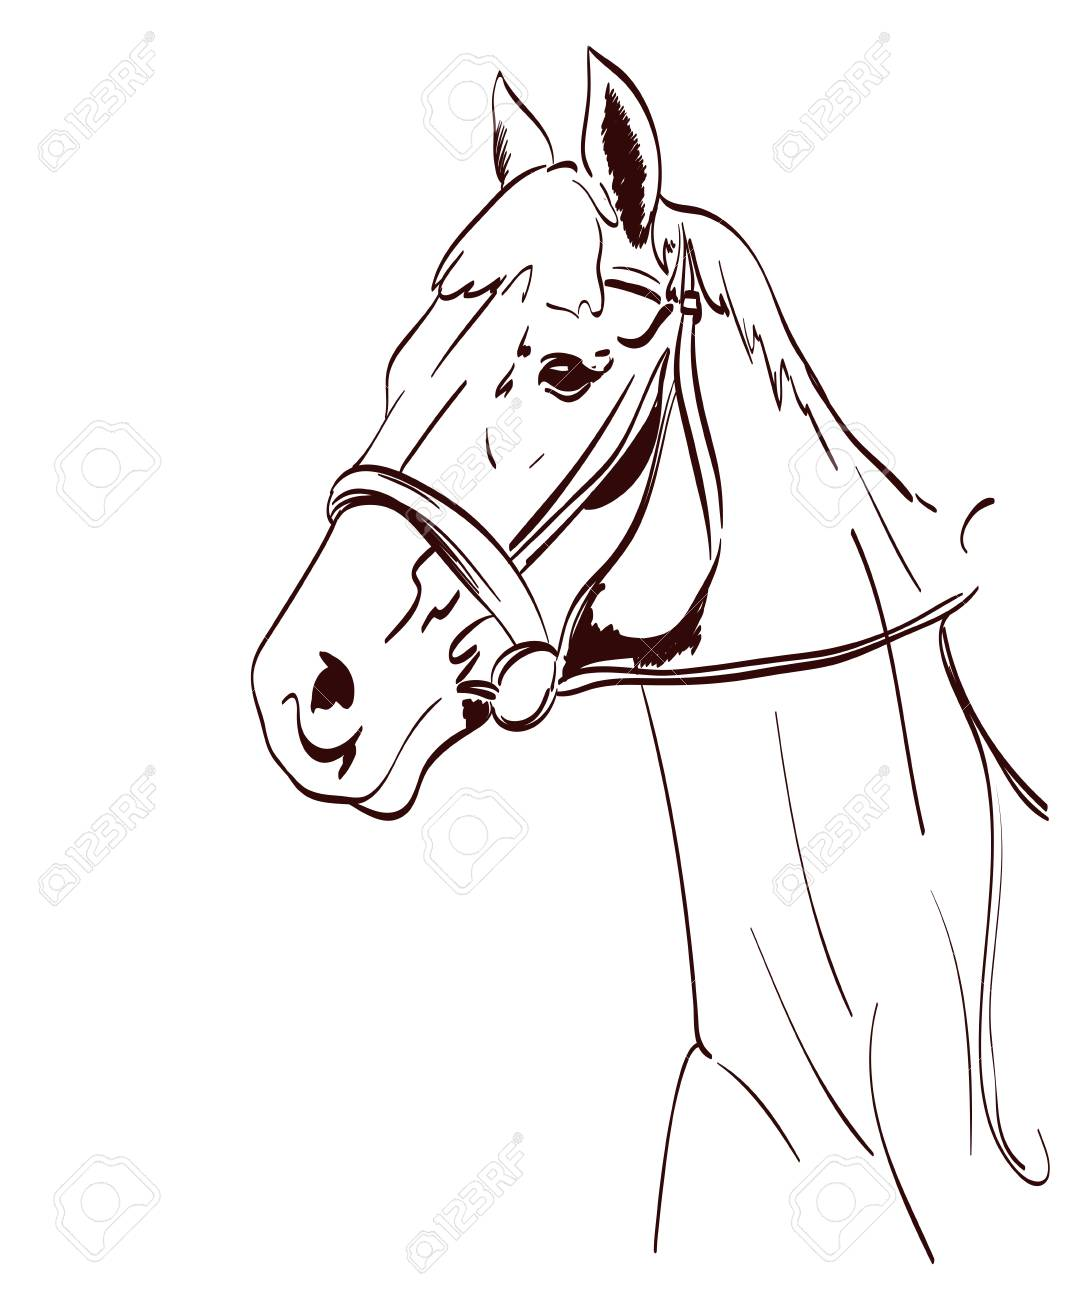 1084x1300 Horse Head Vector Illustration In Line Art Style. Equestrian